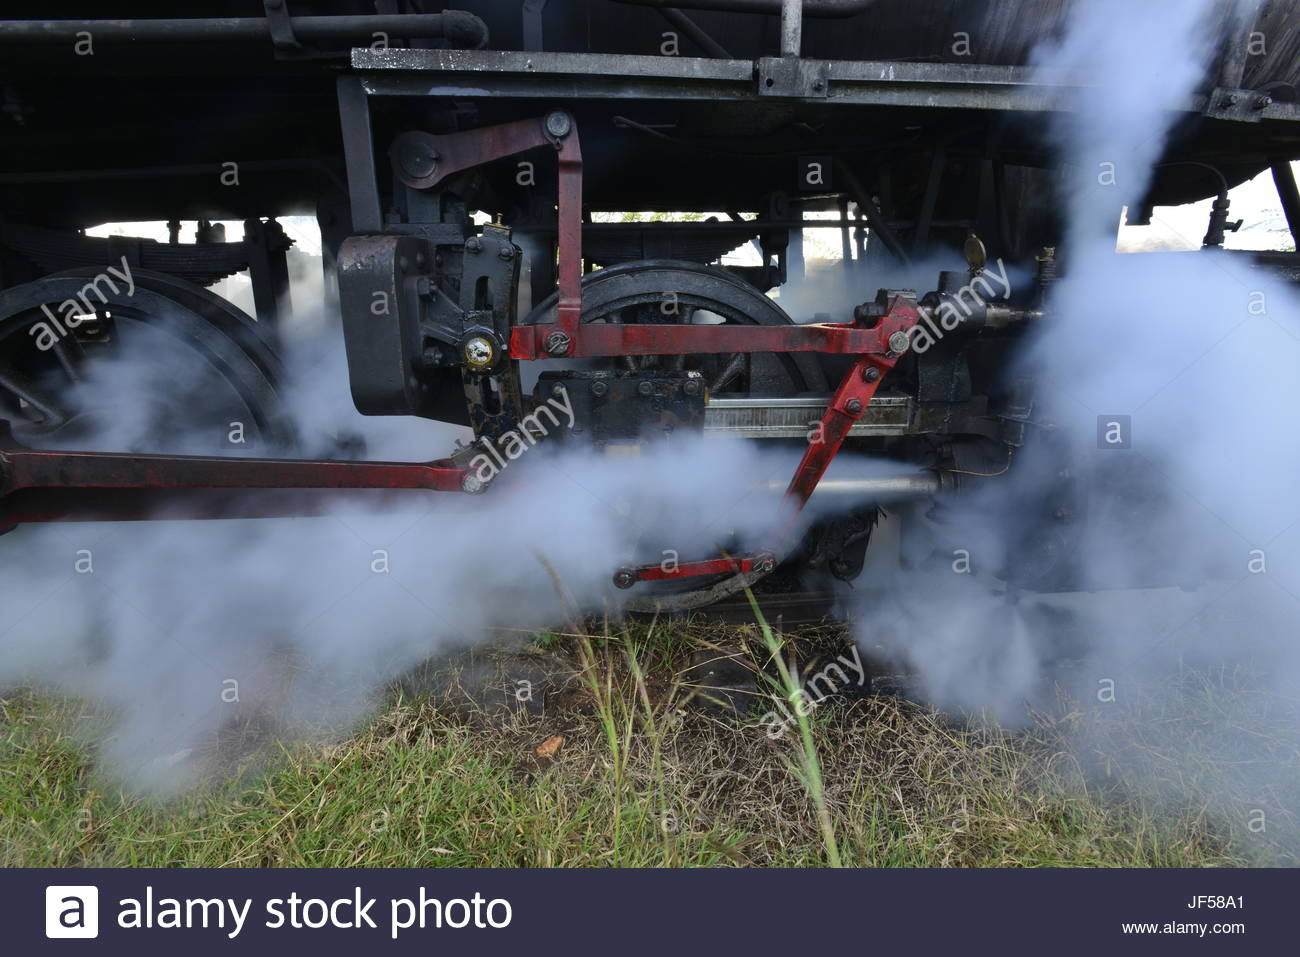 Steam escapes from a 1913 locomotive that was used in the transport of sugarcane. - Stock Image